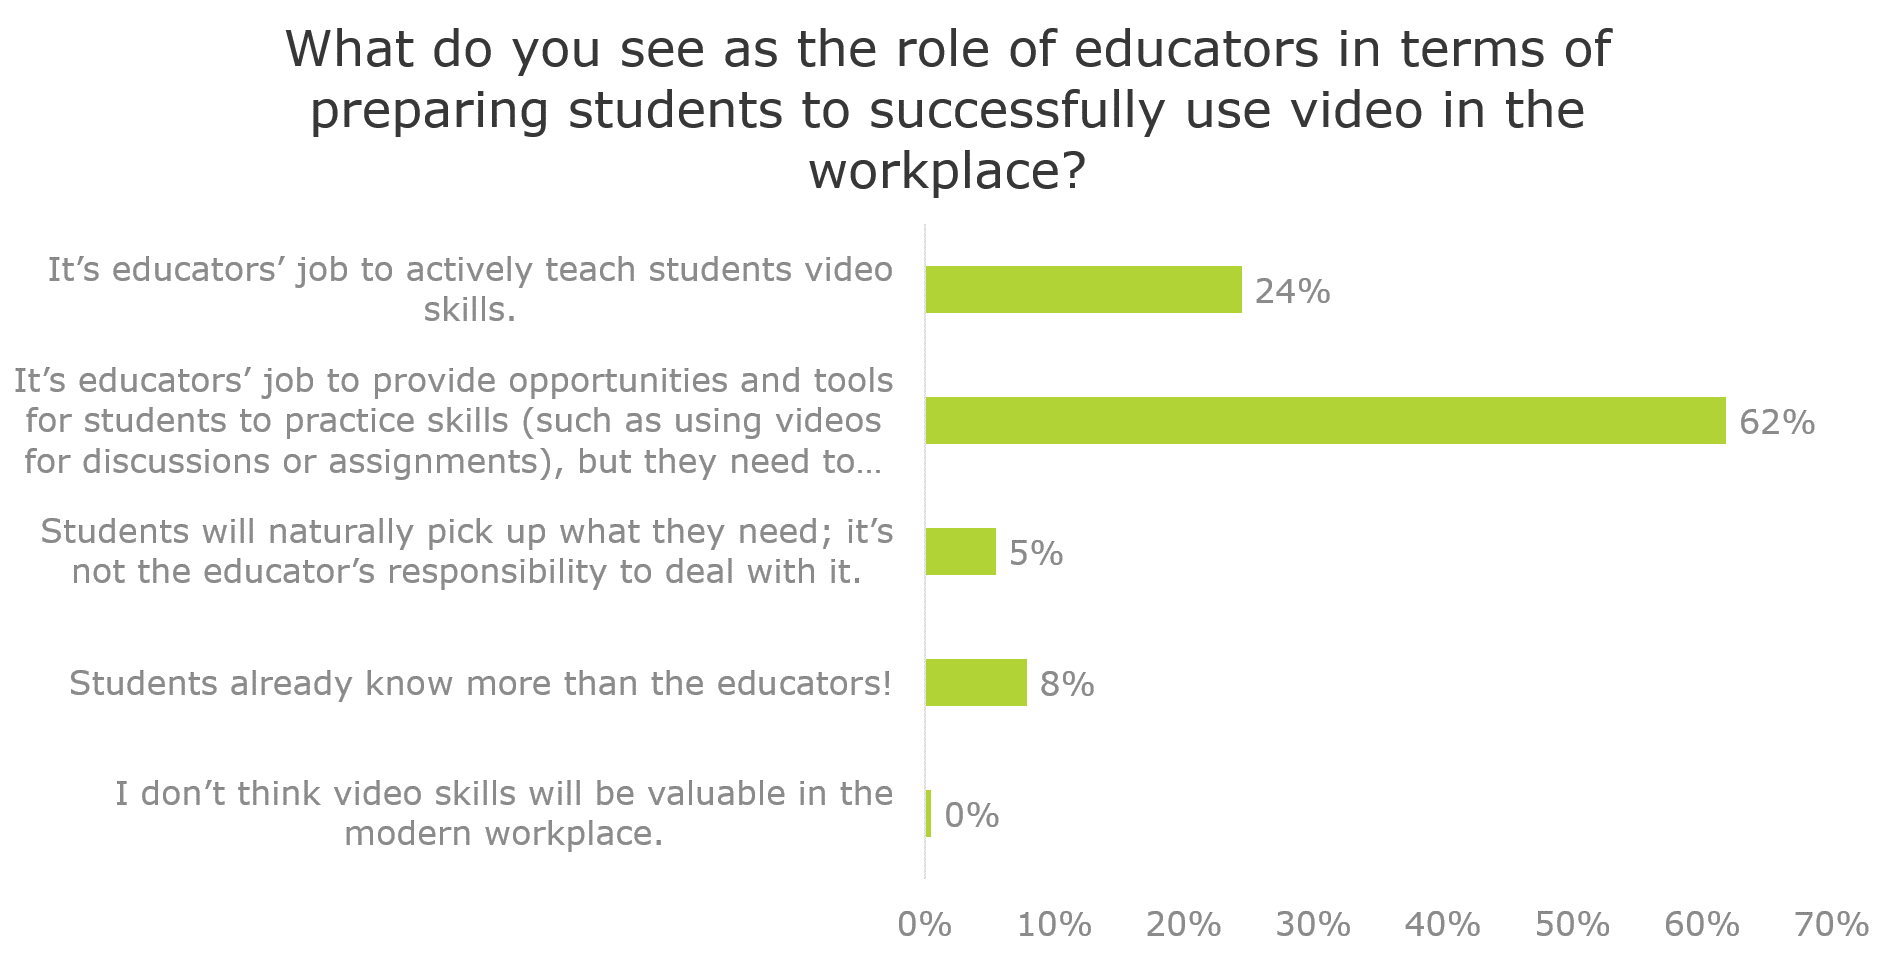 What is the role of educators in terms of preparing students to successfully use video in the workplace